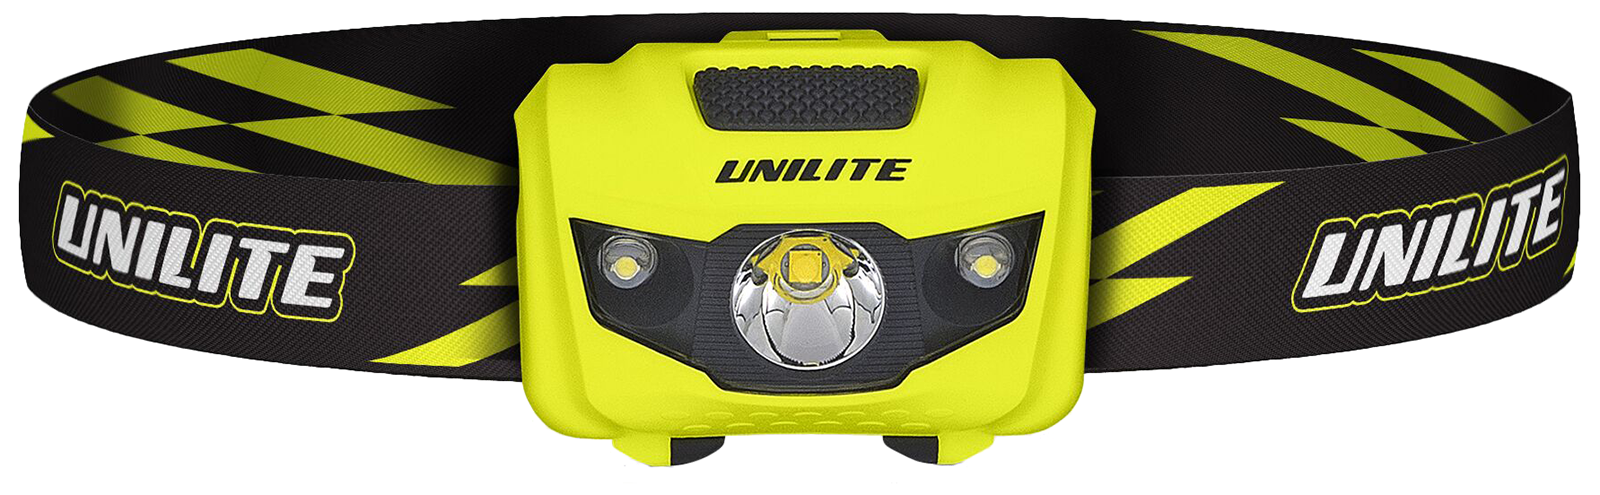 Unilite PS-HDL2 LED Headlight 200 Lumen